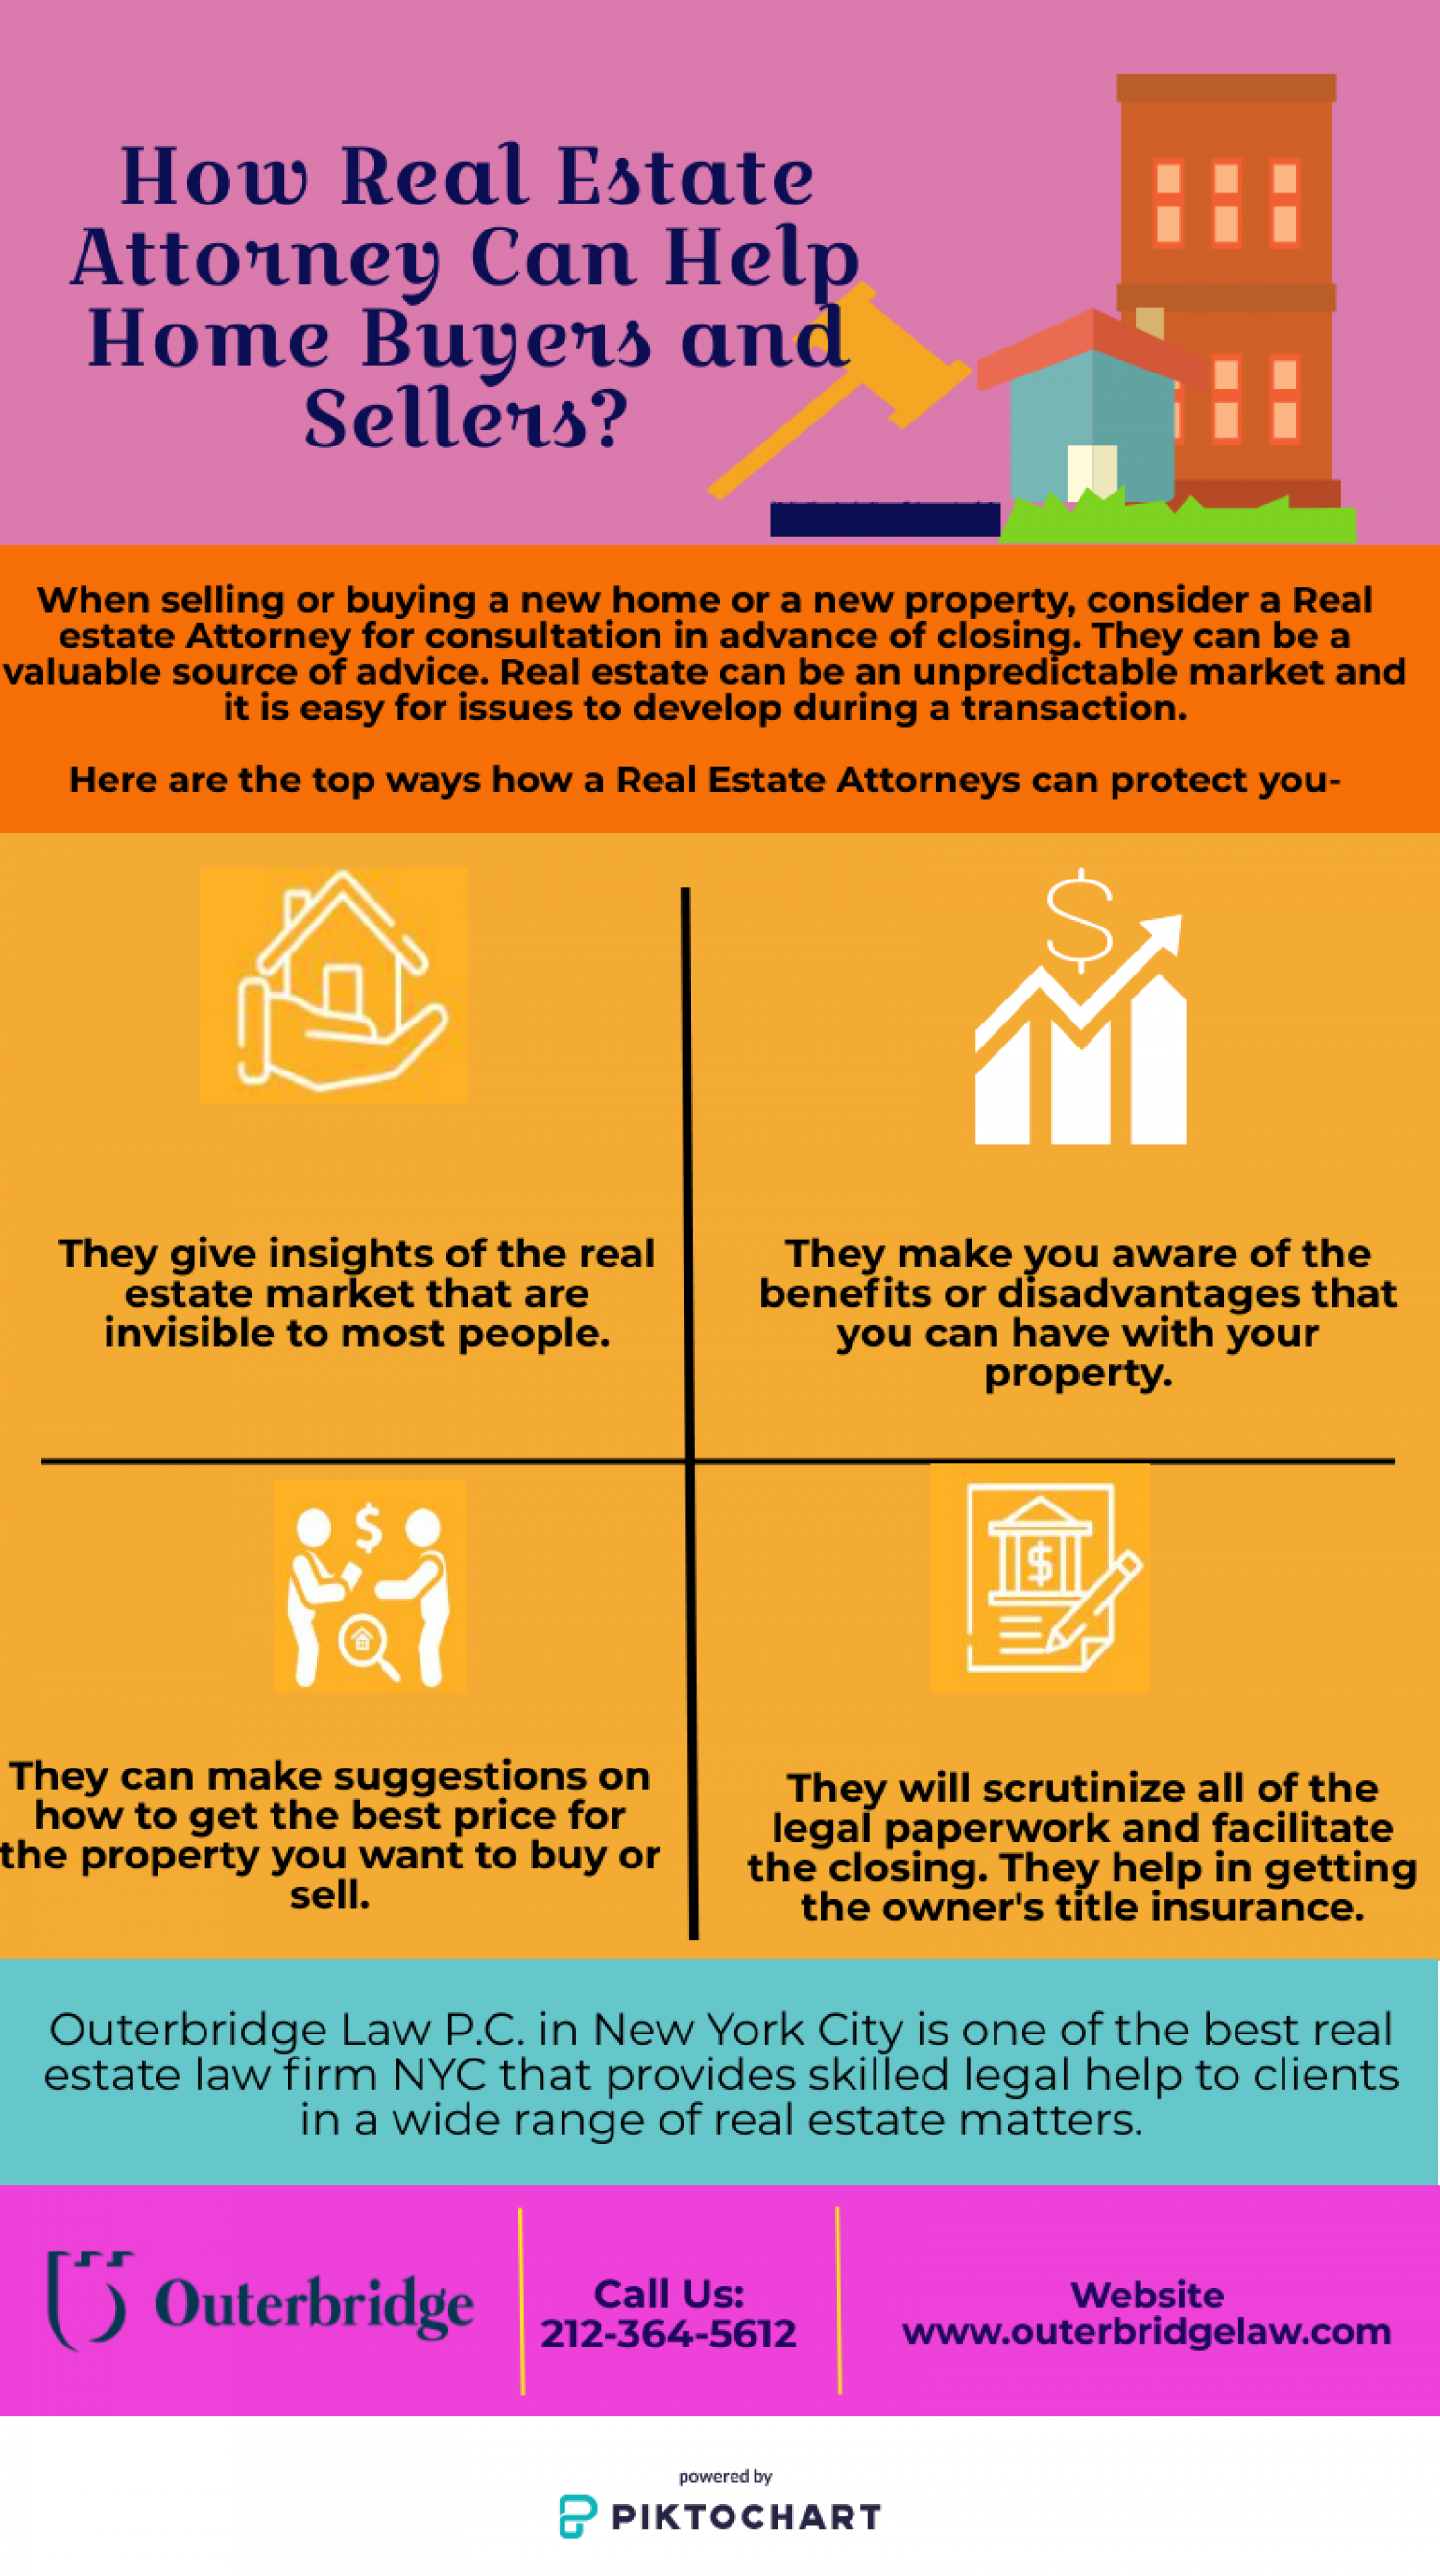 How Real Estate Attorney Can Help Home Buyers and Sellers? Infographic